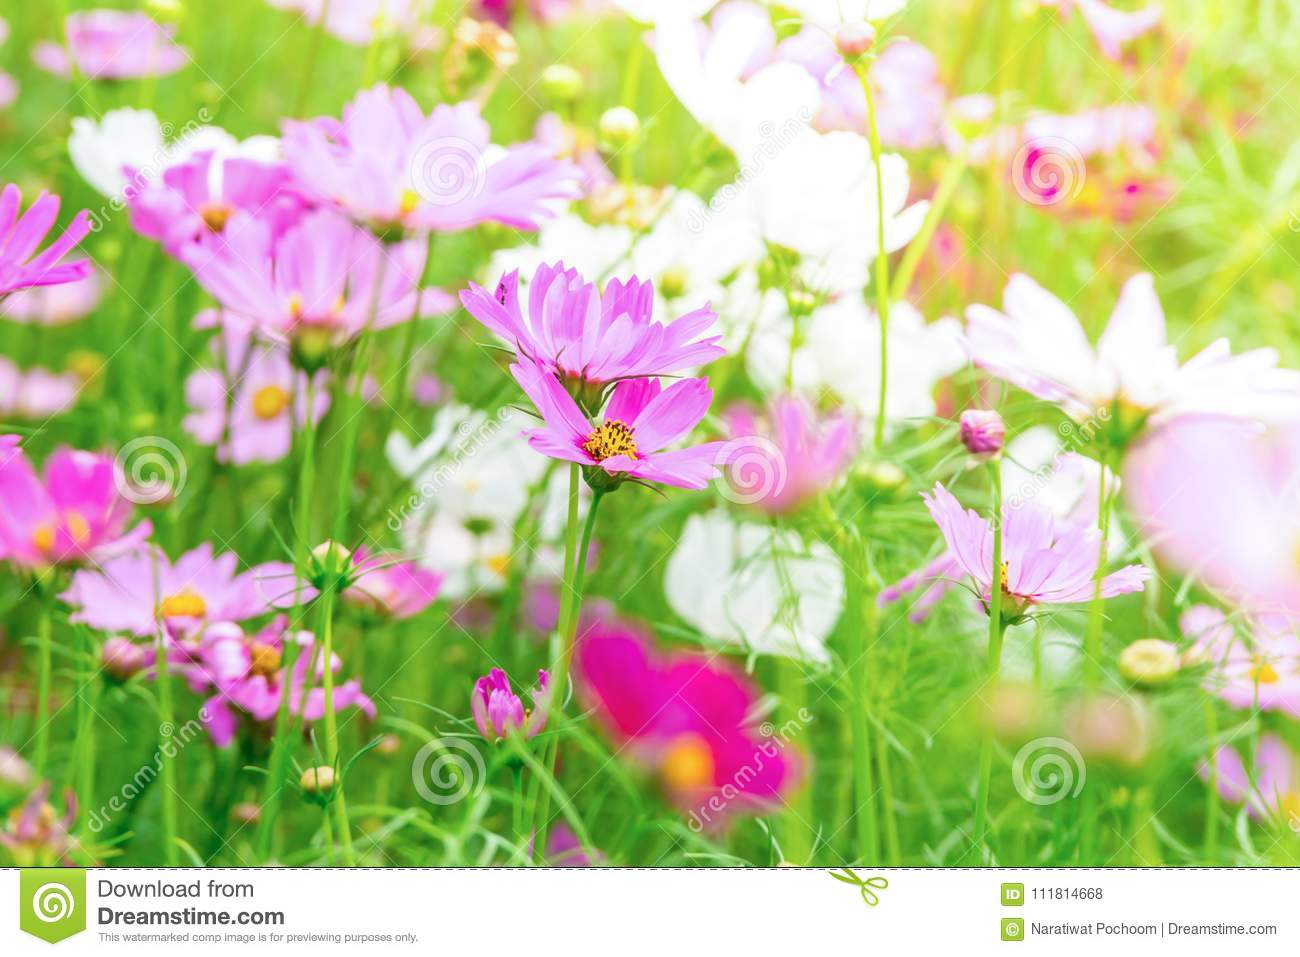 Pink and white cosmos flowers in garden beautiful flower stock download pink and white cosmos flowers in garden beautiful flower stock photo image of mightylinksfo